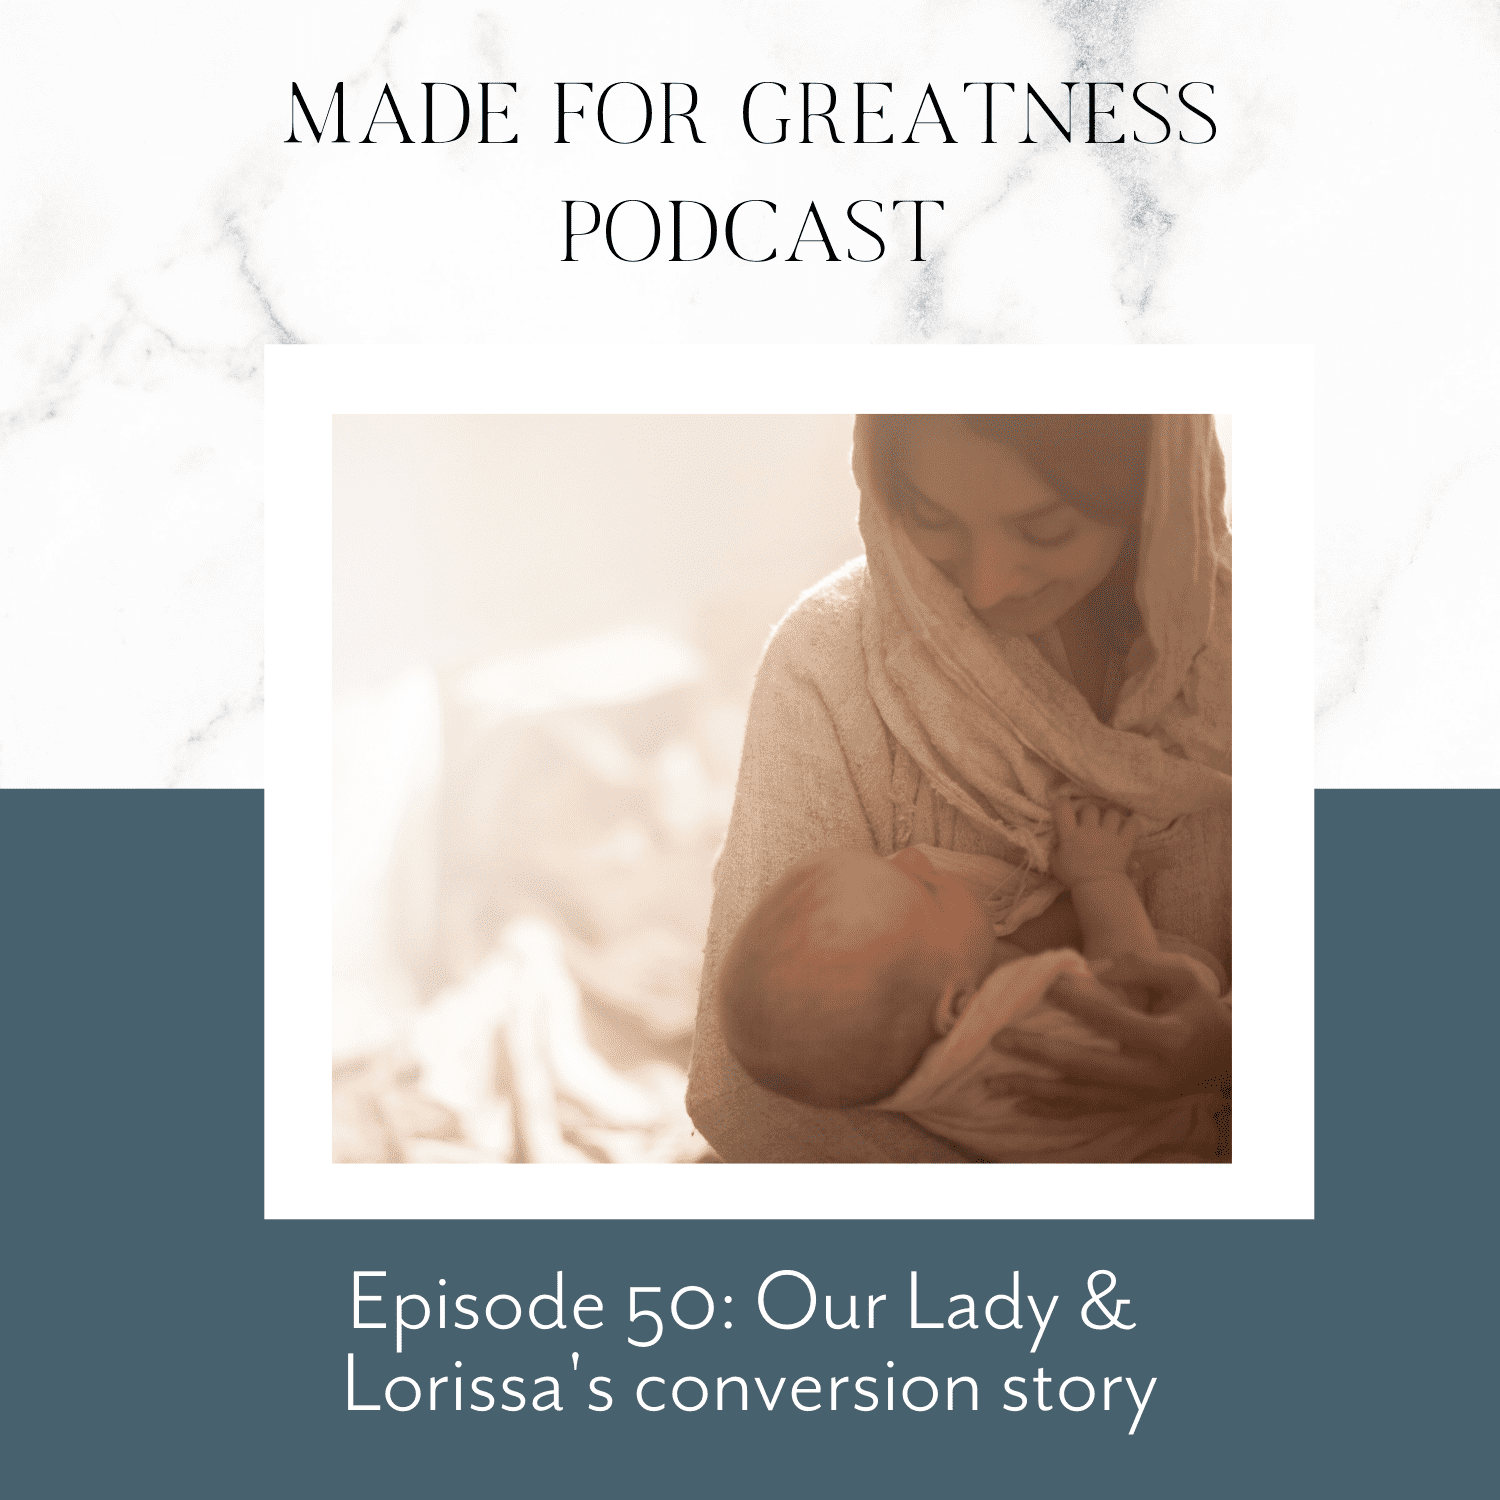 Our Lady & Lorissa's Conversion Story